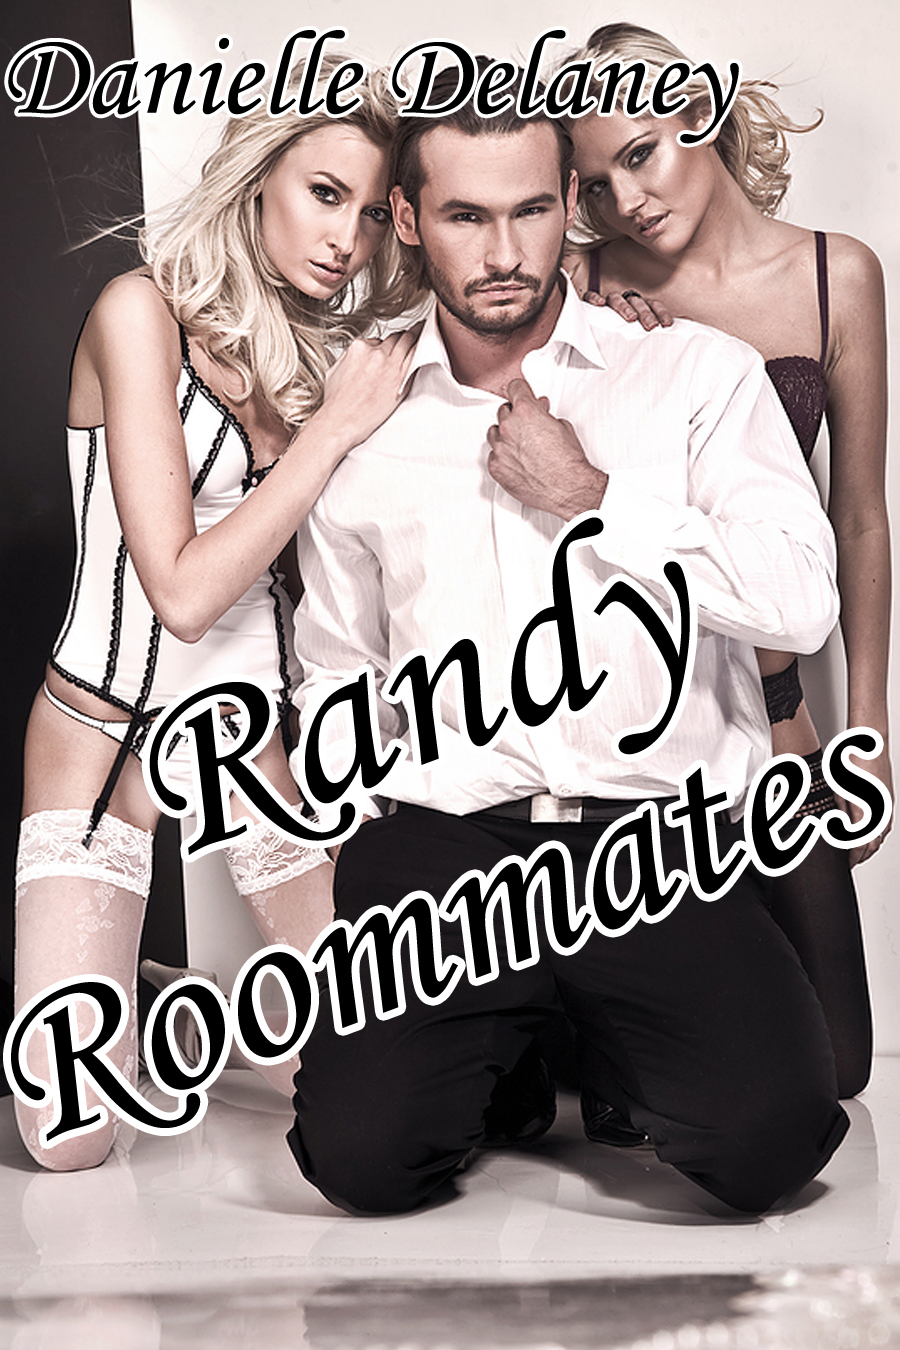 Randy Roommates - Super Sexy Threesome